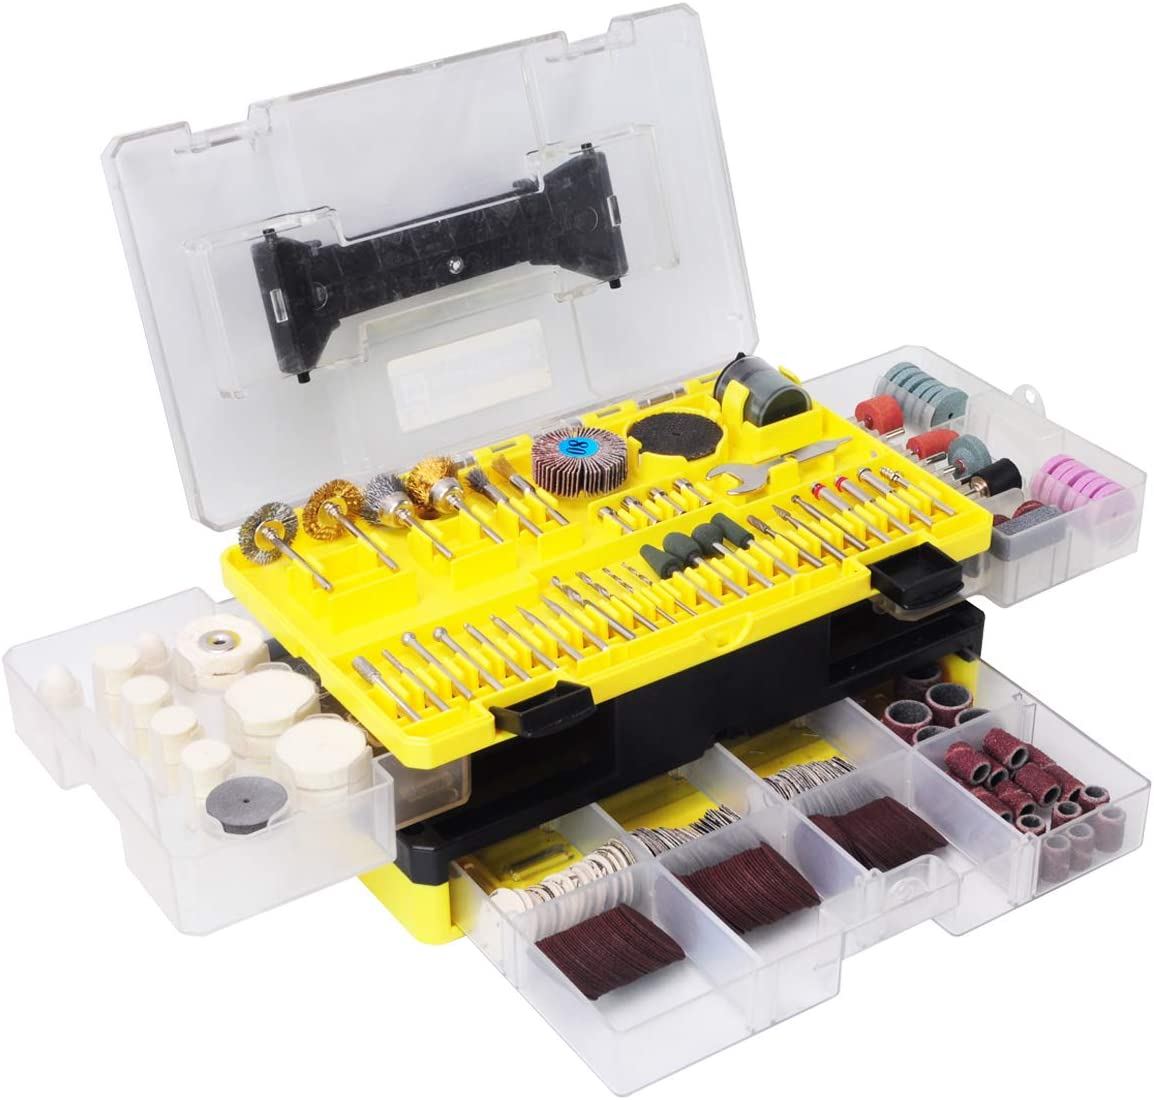 Rotary Tool Accessories Kit, Longmate 349 Piece 1/8 Inch Shanks Electric Tool Accessories for Easy Drilling, Cutting, Grinding, Sanding, Sharpening, Carving and Polishing